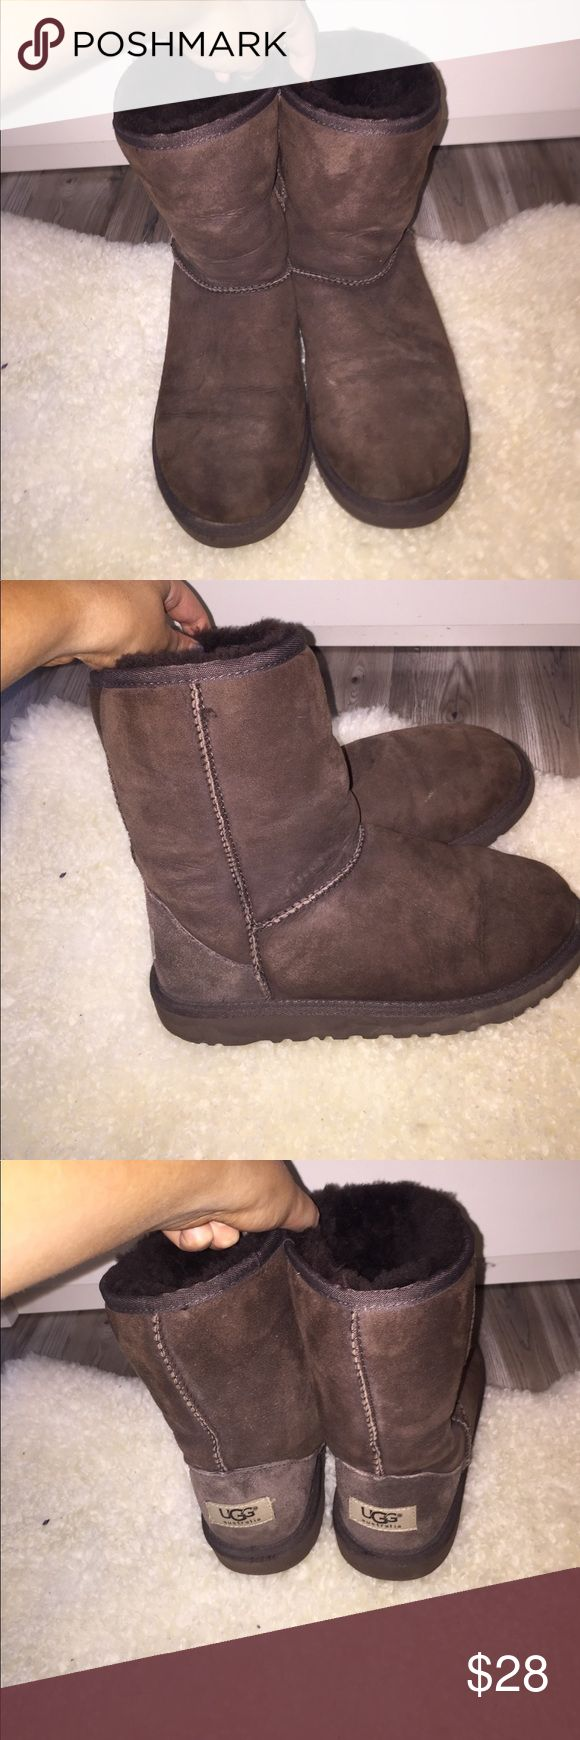 Real UGG boots wormen's US 4 dark brown Real authentic Ugg boats gently worn in chocolate brown US size 4 with brown fur lining no distinct scratches or stains on very good condition price can be negotiated if you make me an offer UGG Shoes Ankle Boots & Booties